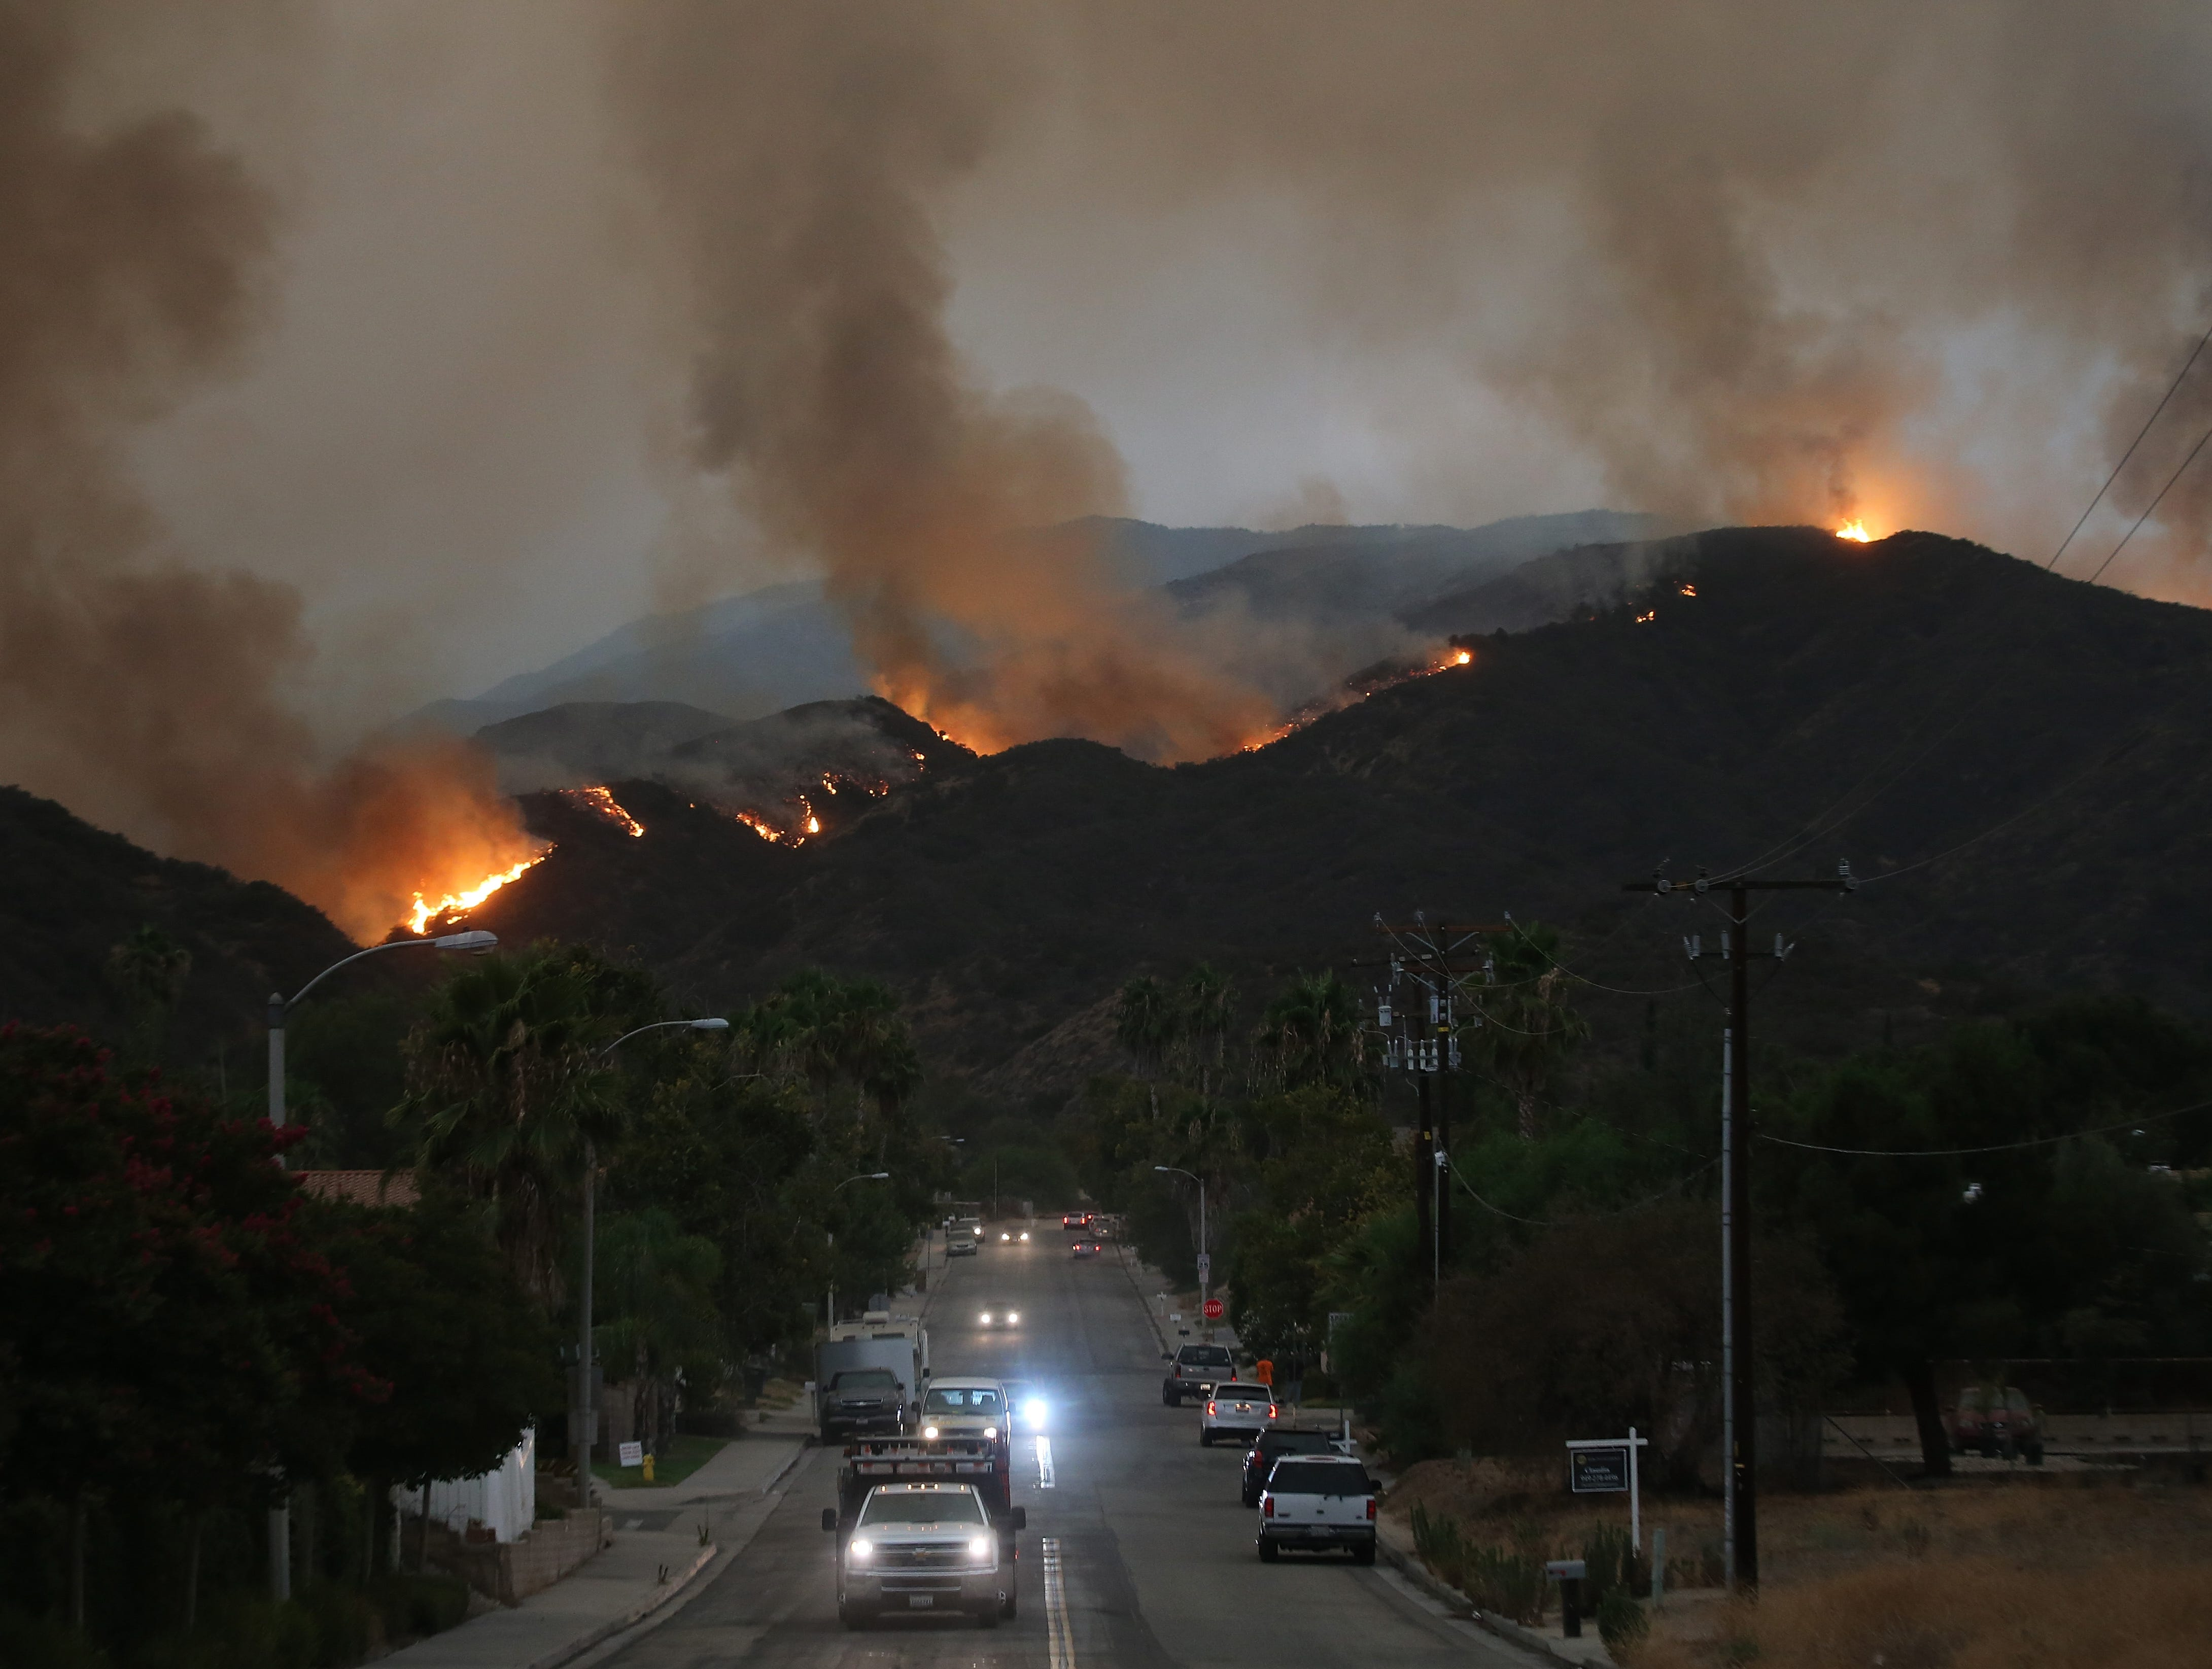 LAKE ELSINORE, CA - AUGUST 08: Cars drive down a hill in a mandatory evacuation area as the Holy Fire burns in Cleveland National Forest on August 8, 2018 in Lake Elsinore, California. The fire has burned at least 6,200 acres and destroyed twelve structures.  (Photo by Mario Tama/Getty Images)